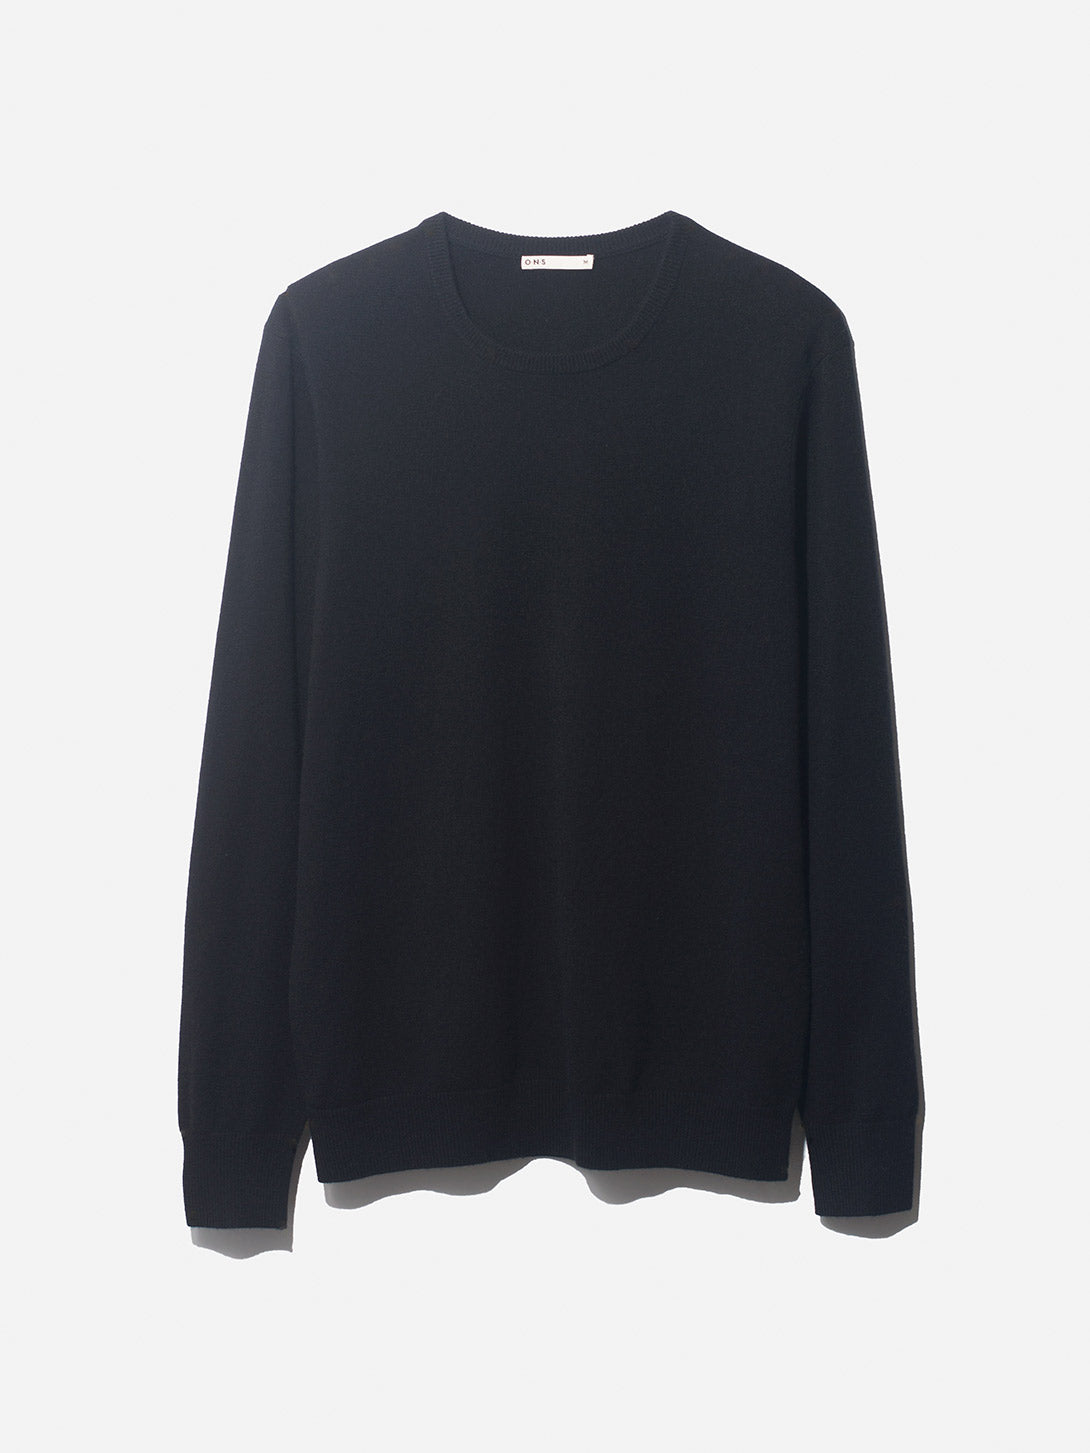 IVY SWEATER ONS CLOTHING BLACK